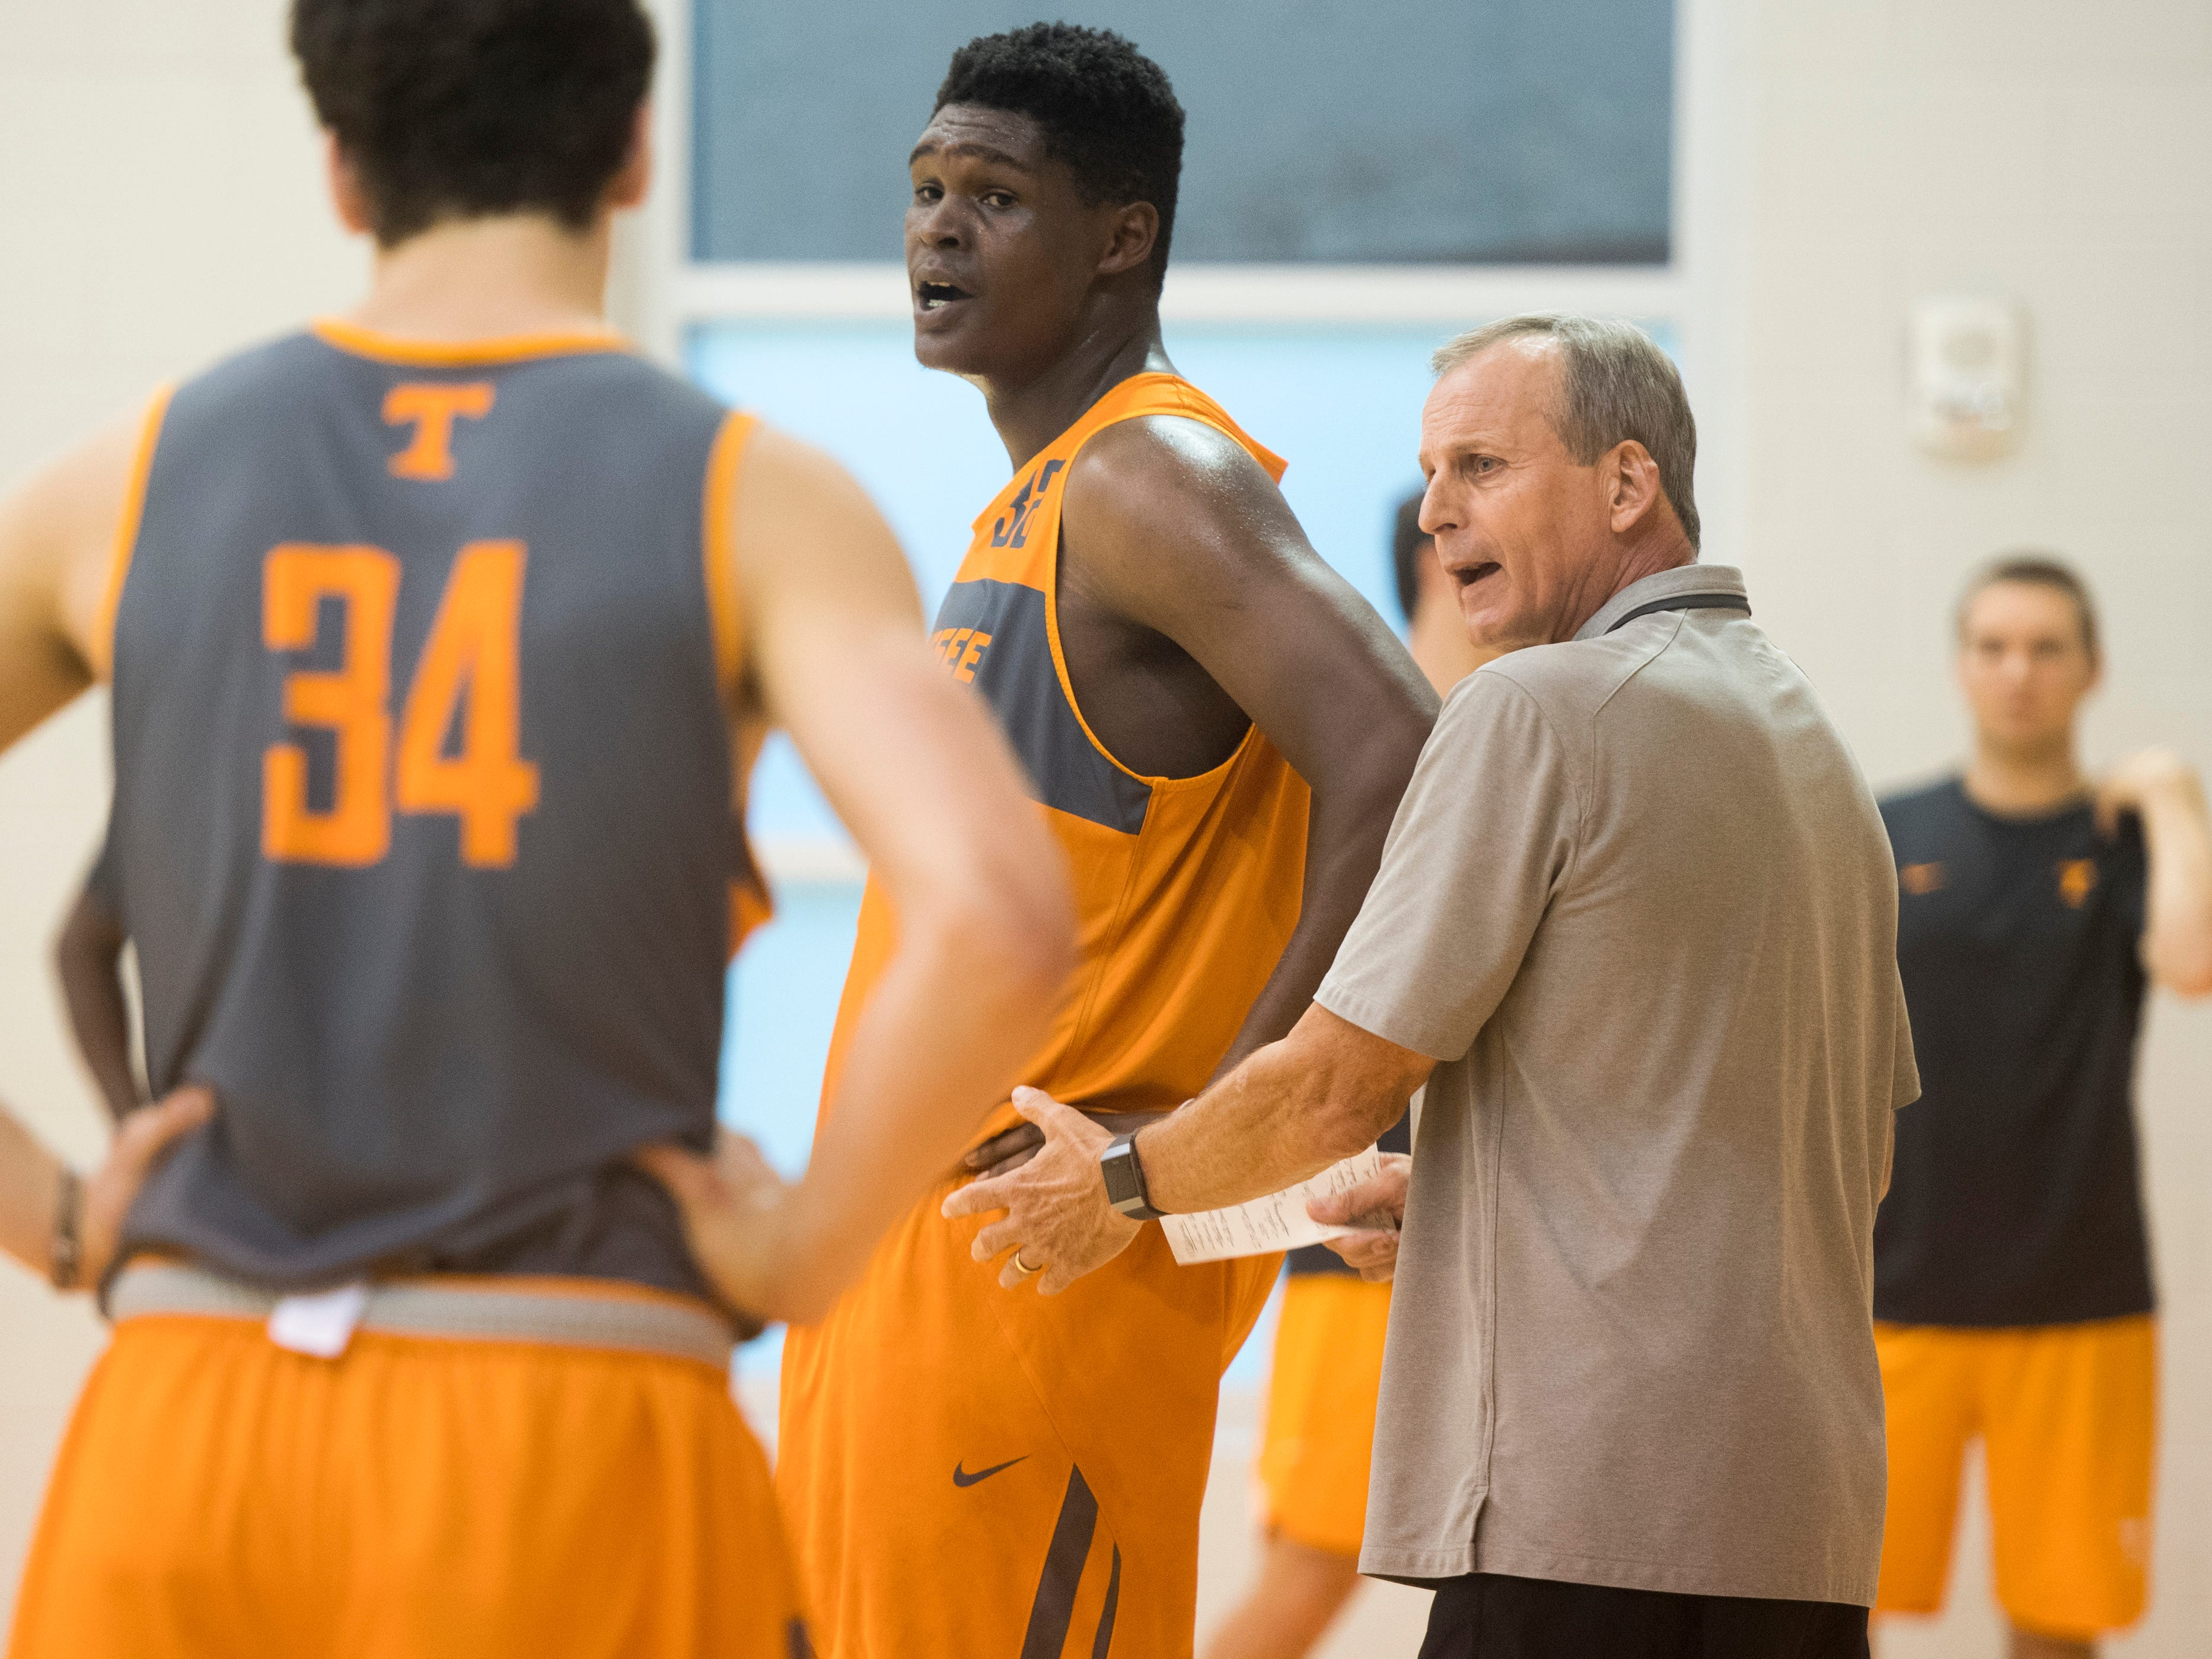 Tennessee head coach Rick Barnes speaks to his players during basketball practice at Pratt Pavilion on the University of Tennessee's campus on Thursday, October 4, 2018.